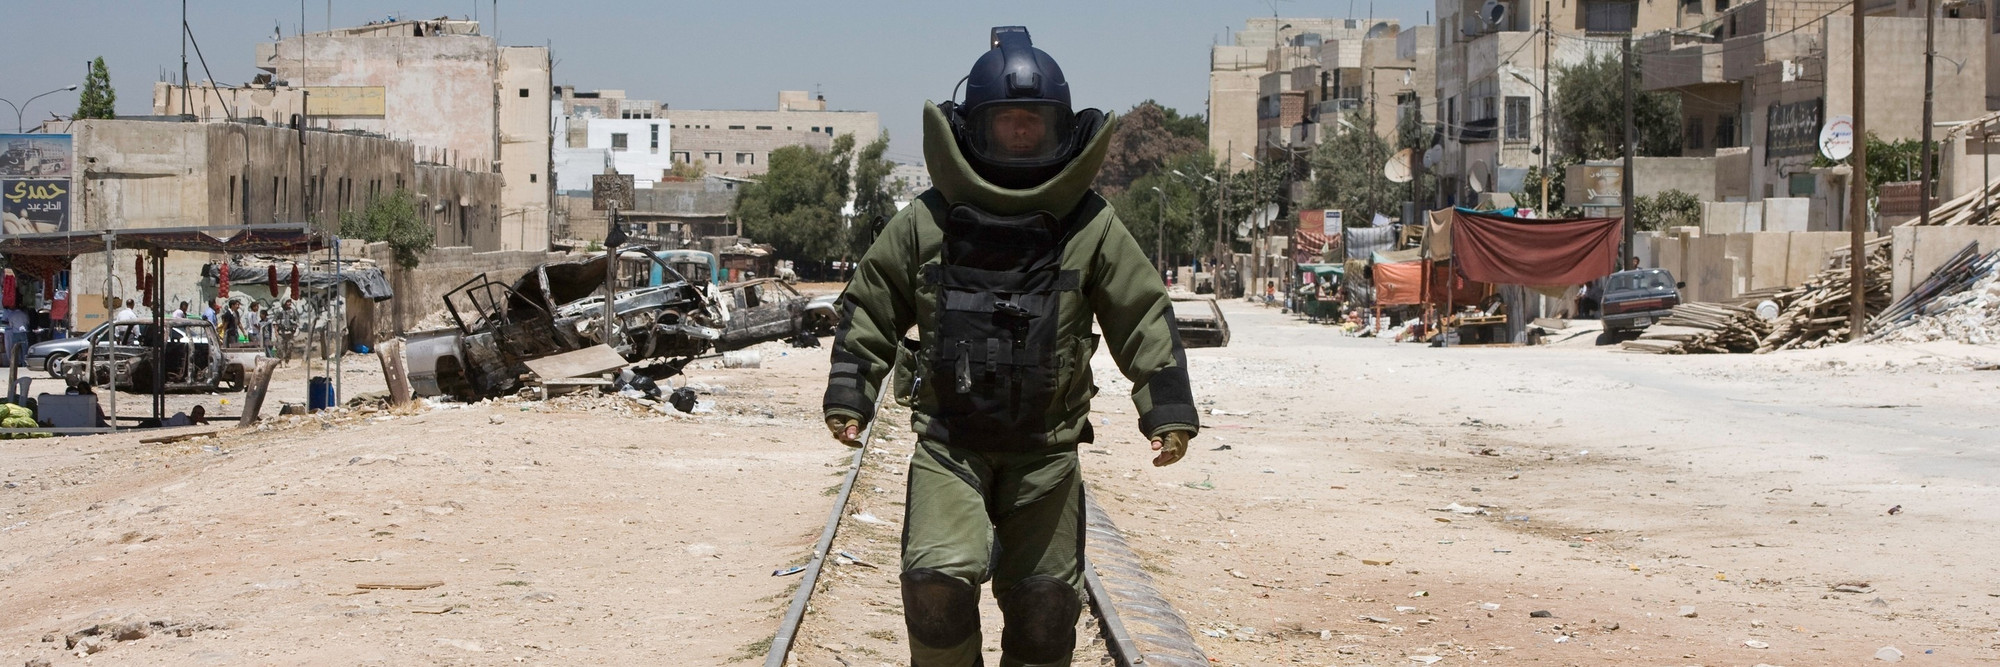 The Hurt Locker. 2008. USA. Directed by Kathryn Bigelow